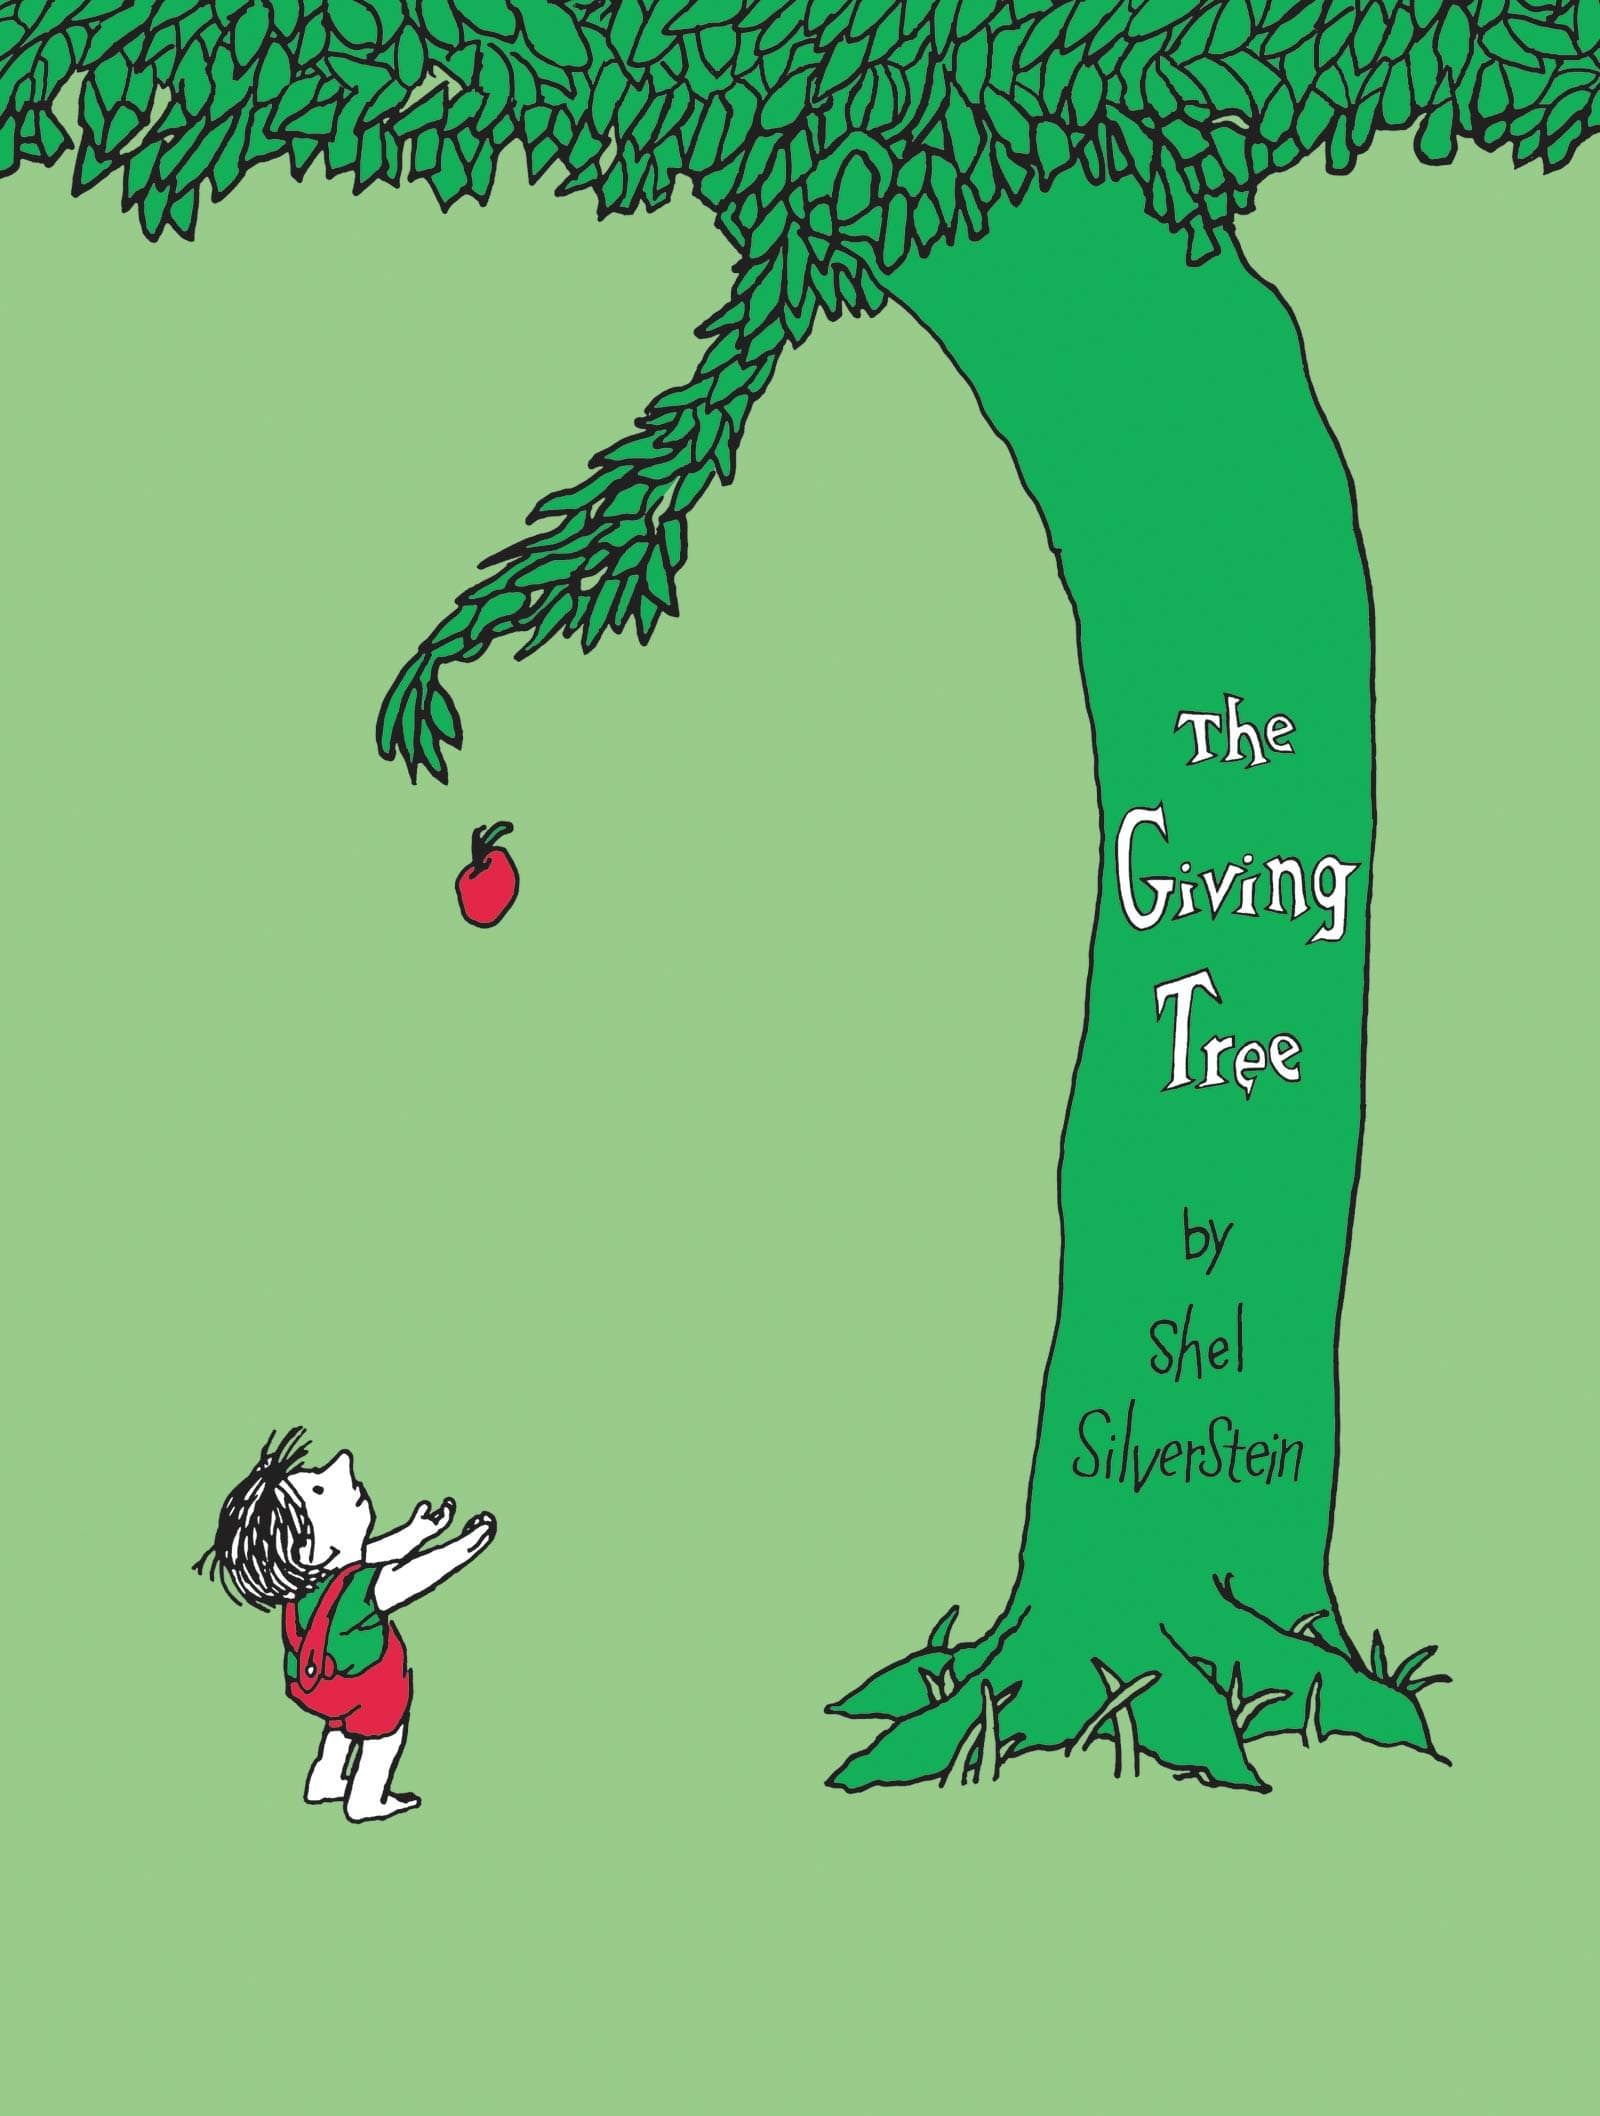 The Giving Tree - Hardcover Book - $6.74 @ Amazon + FS with Prime